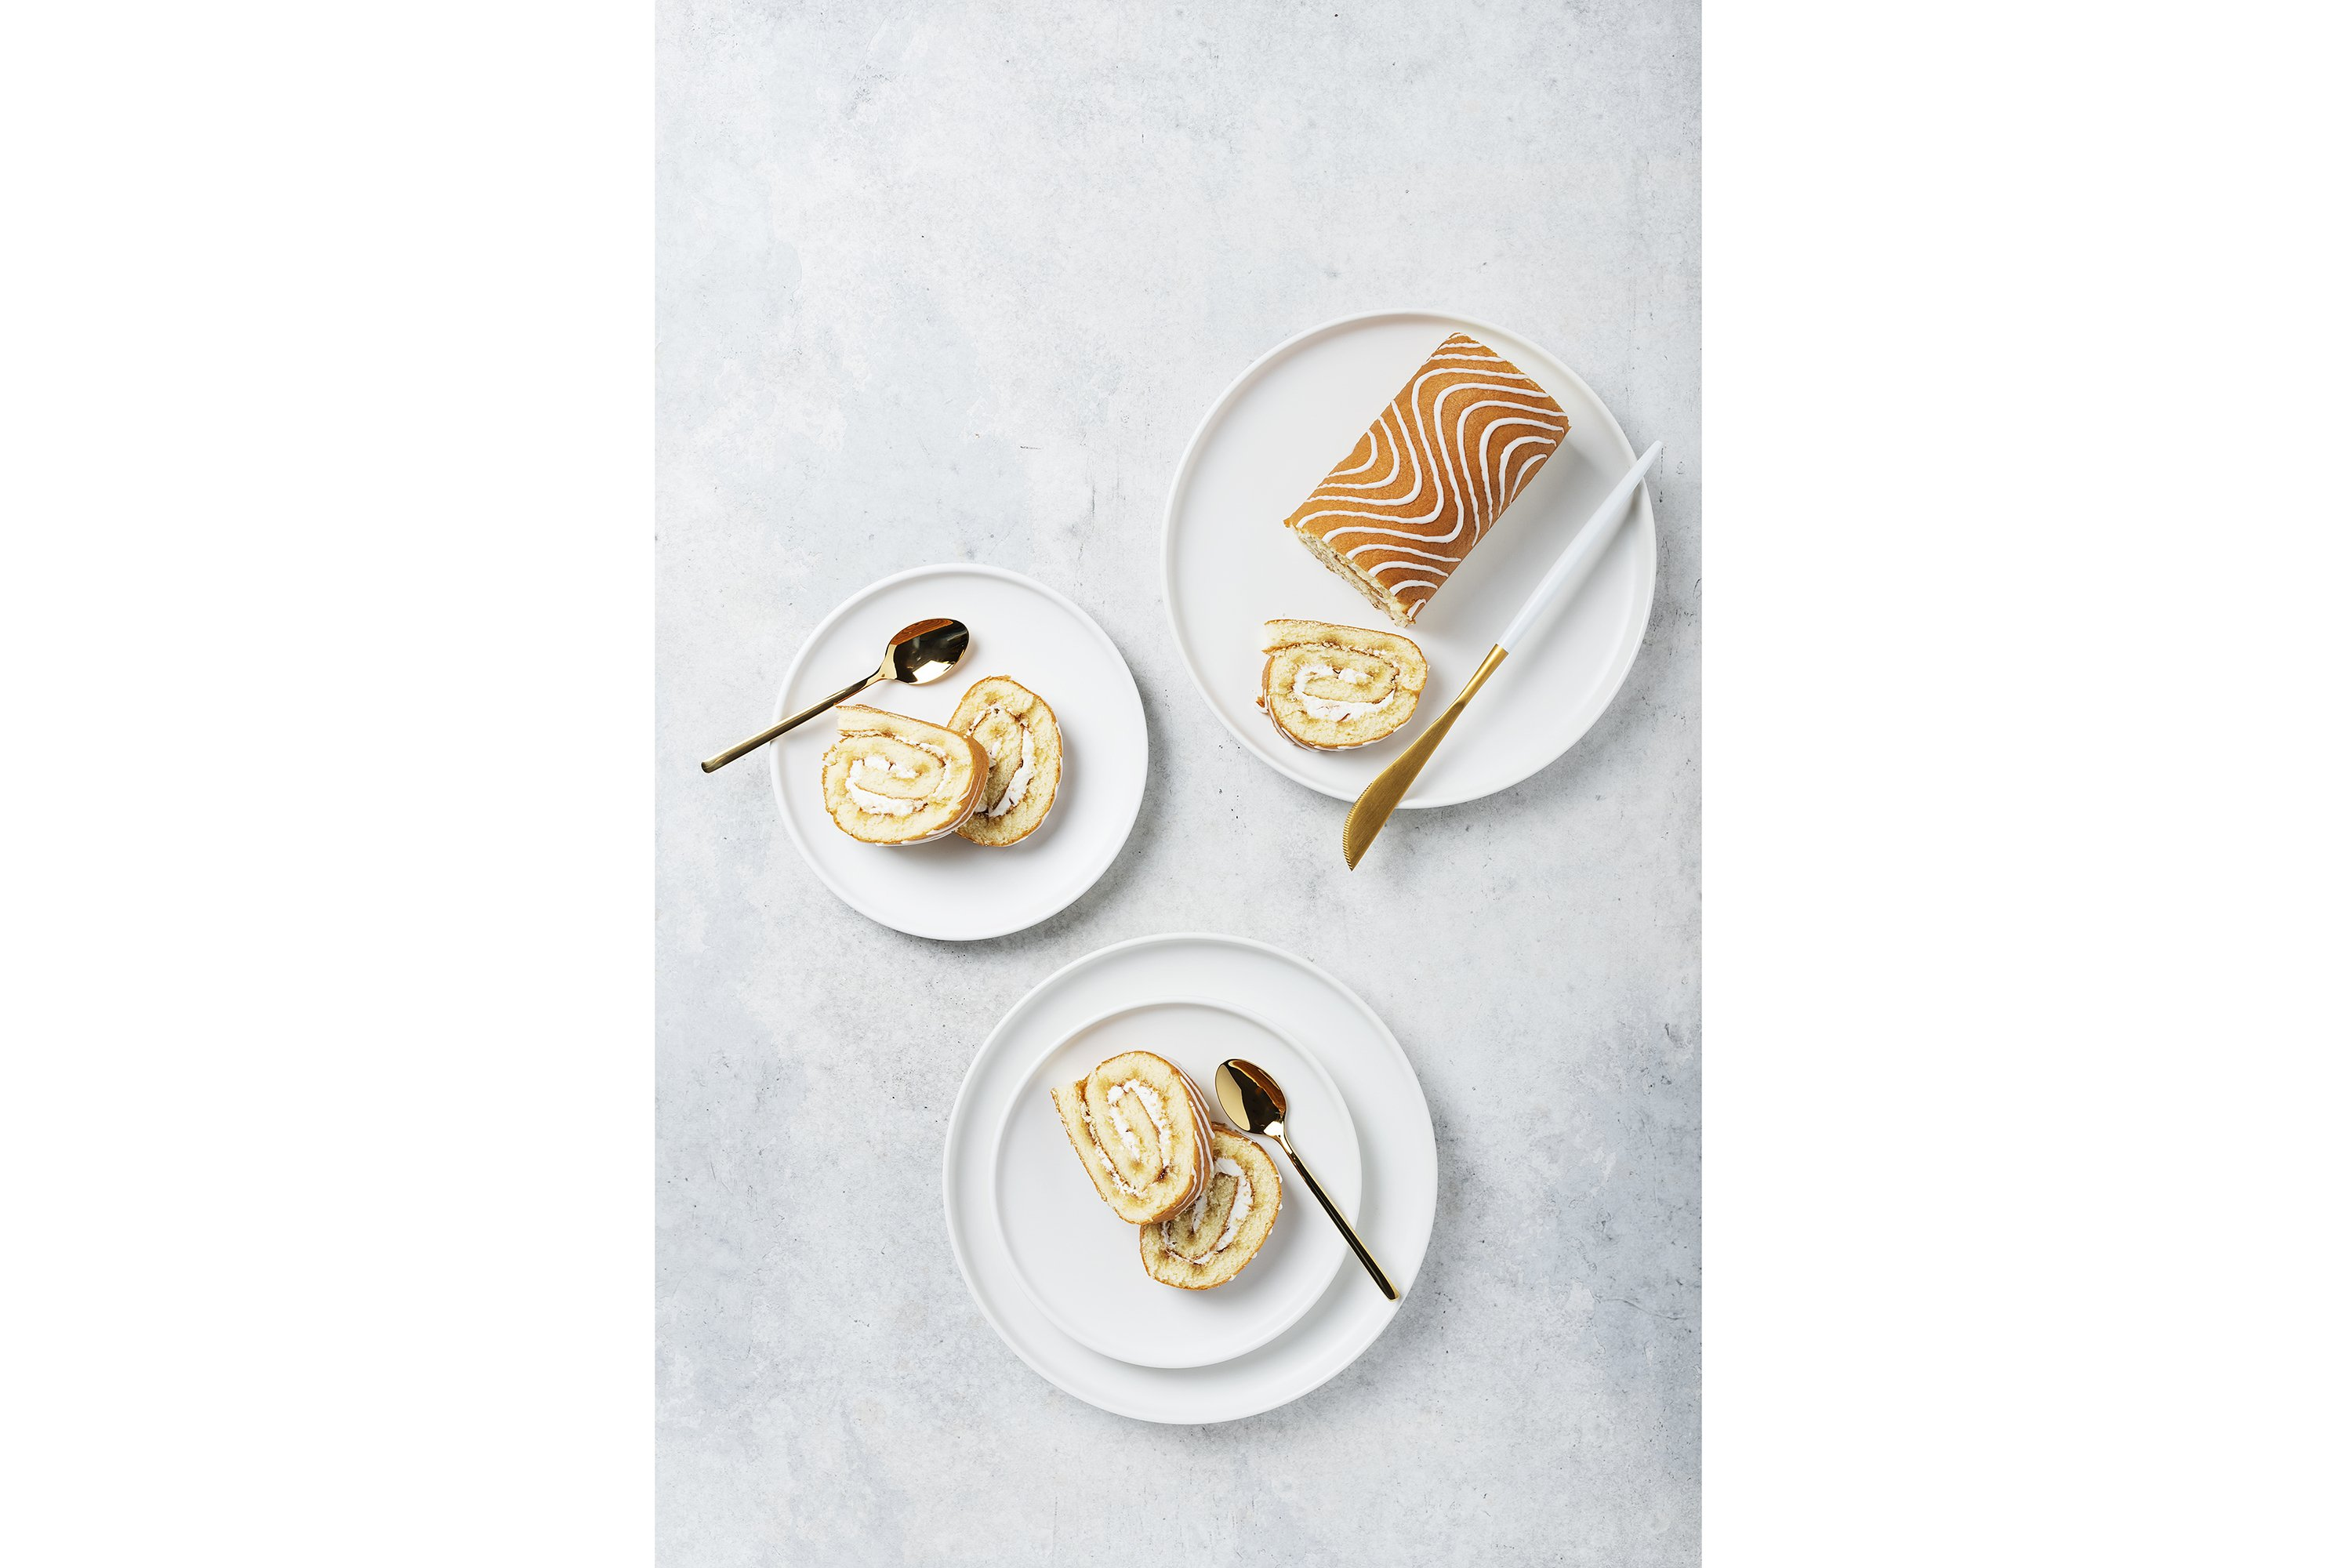 Sweet roll cake with white biscuit and cream example image 1